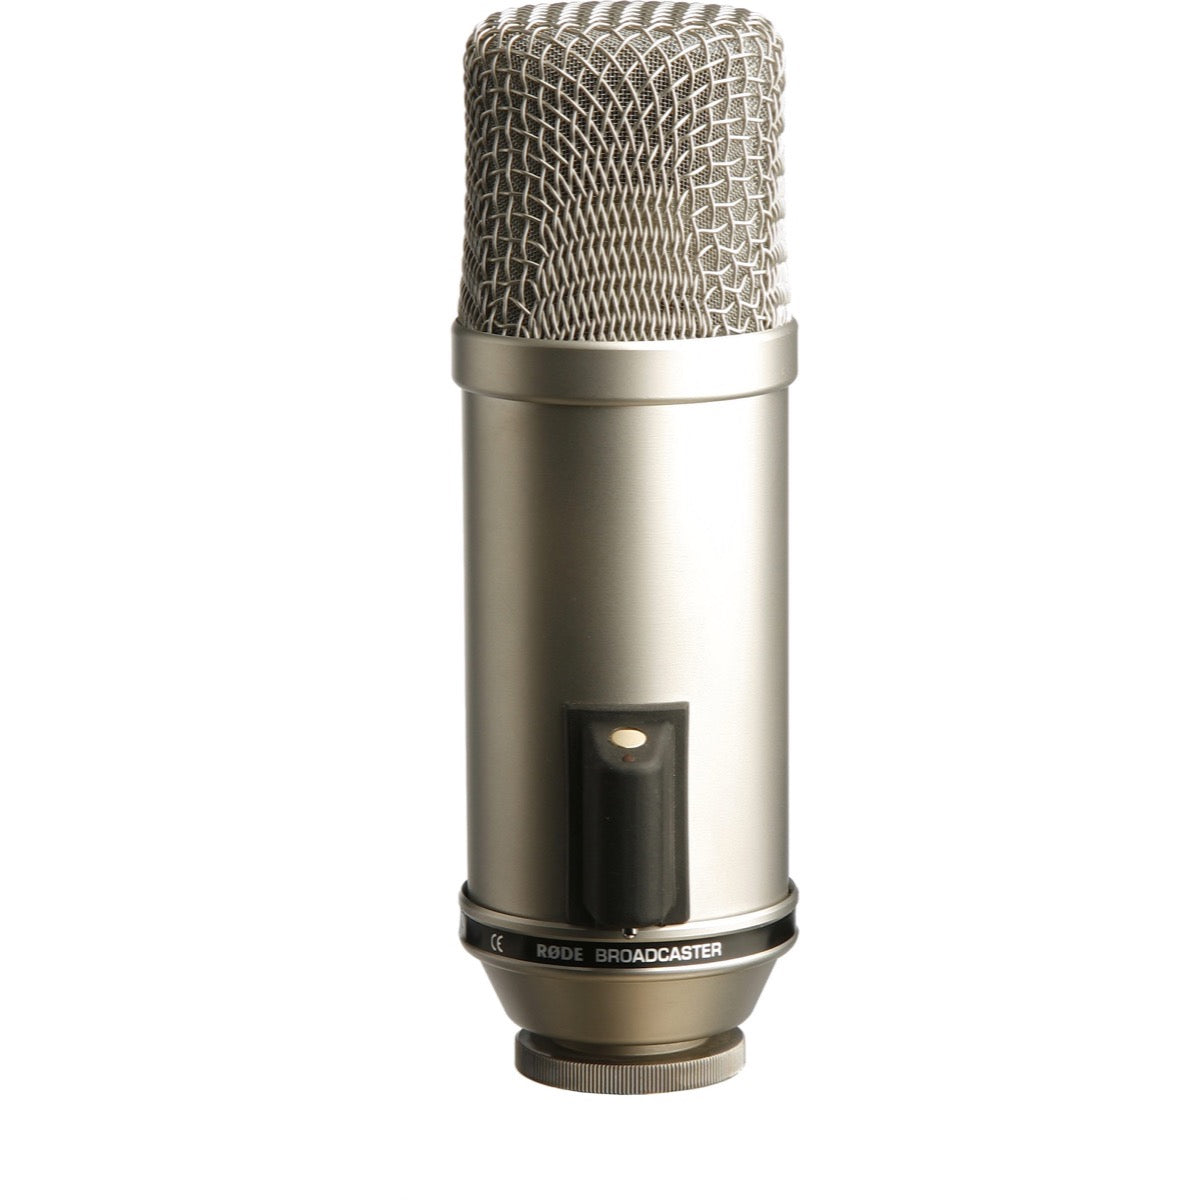 Rode Broadcaster Condenser Microphone, with On-Air Indicator